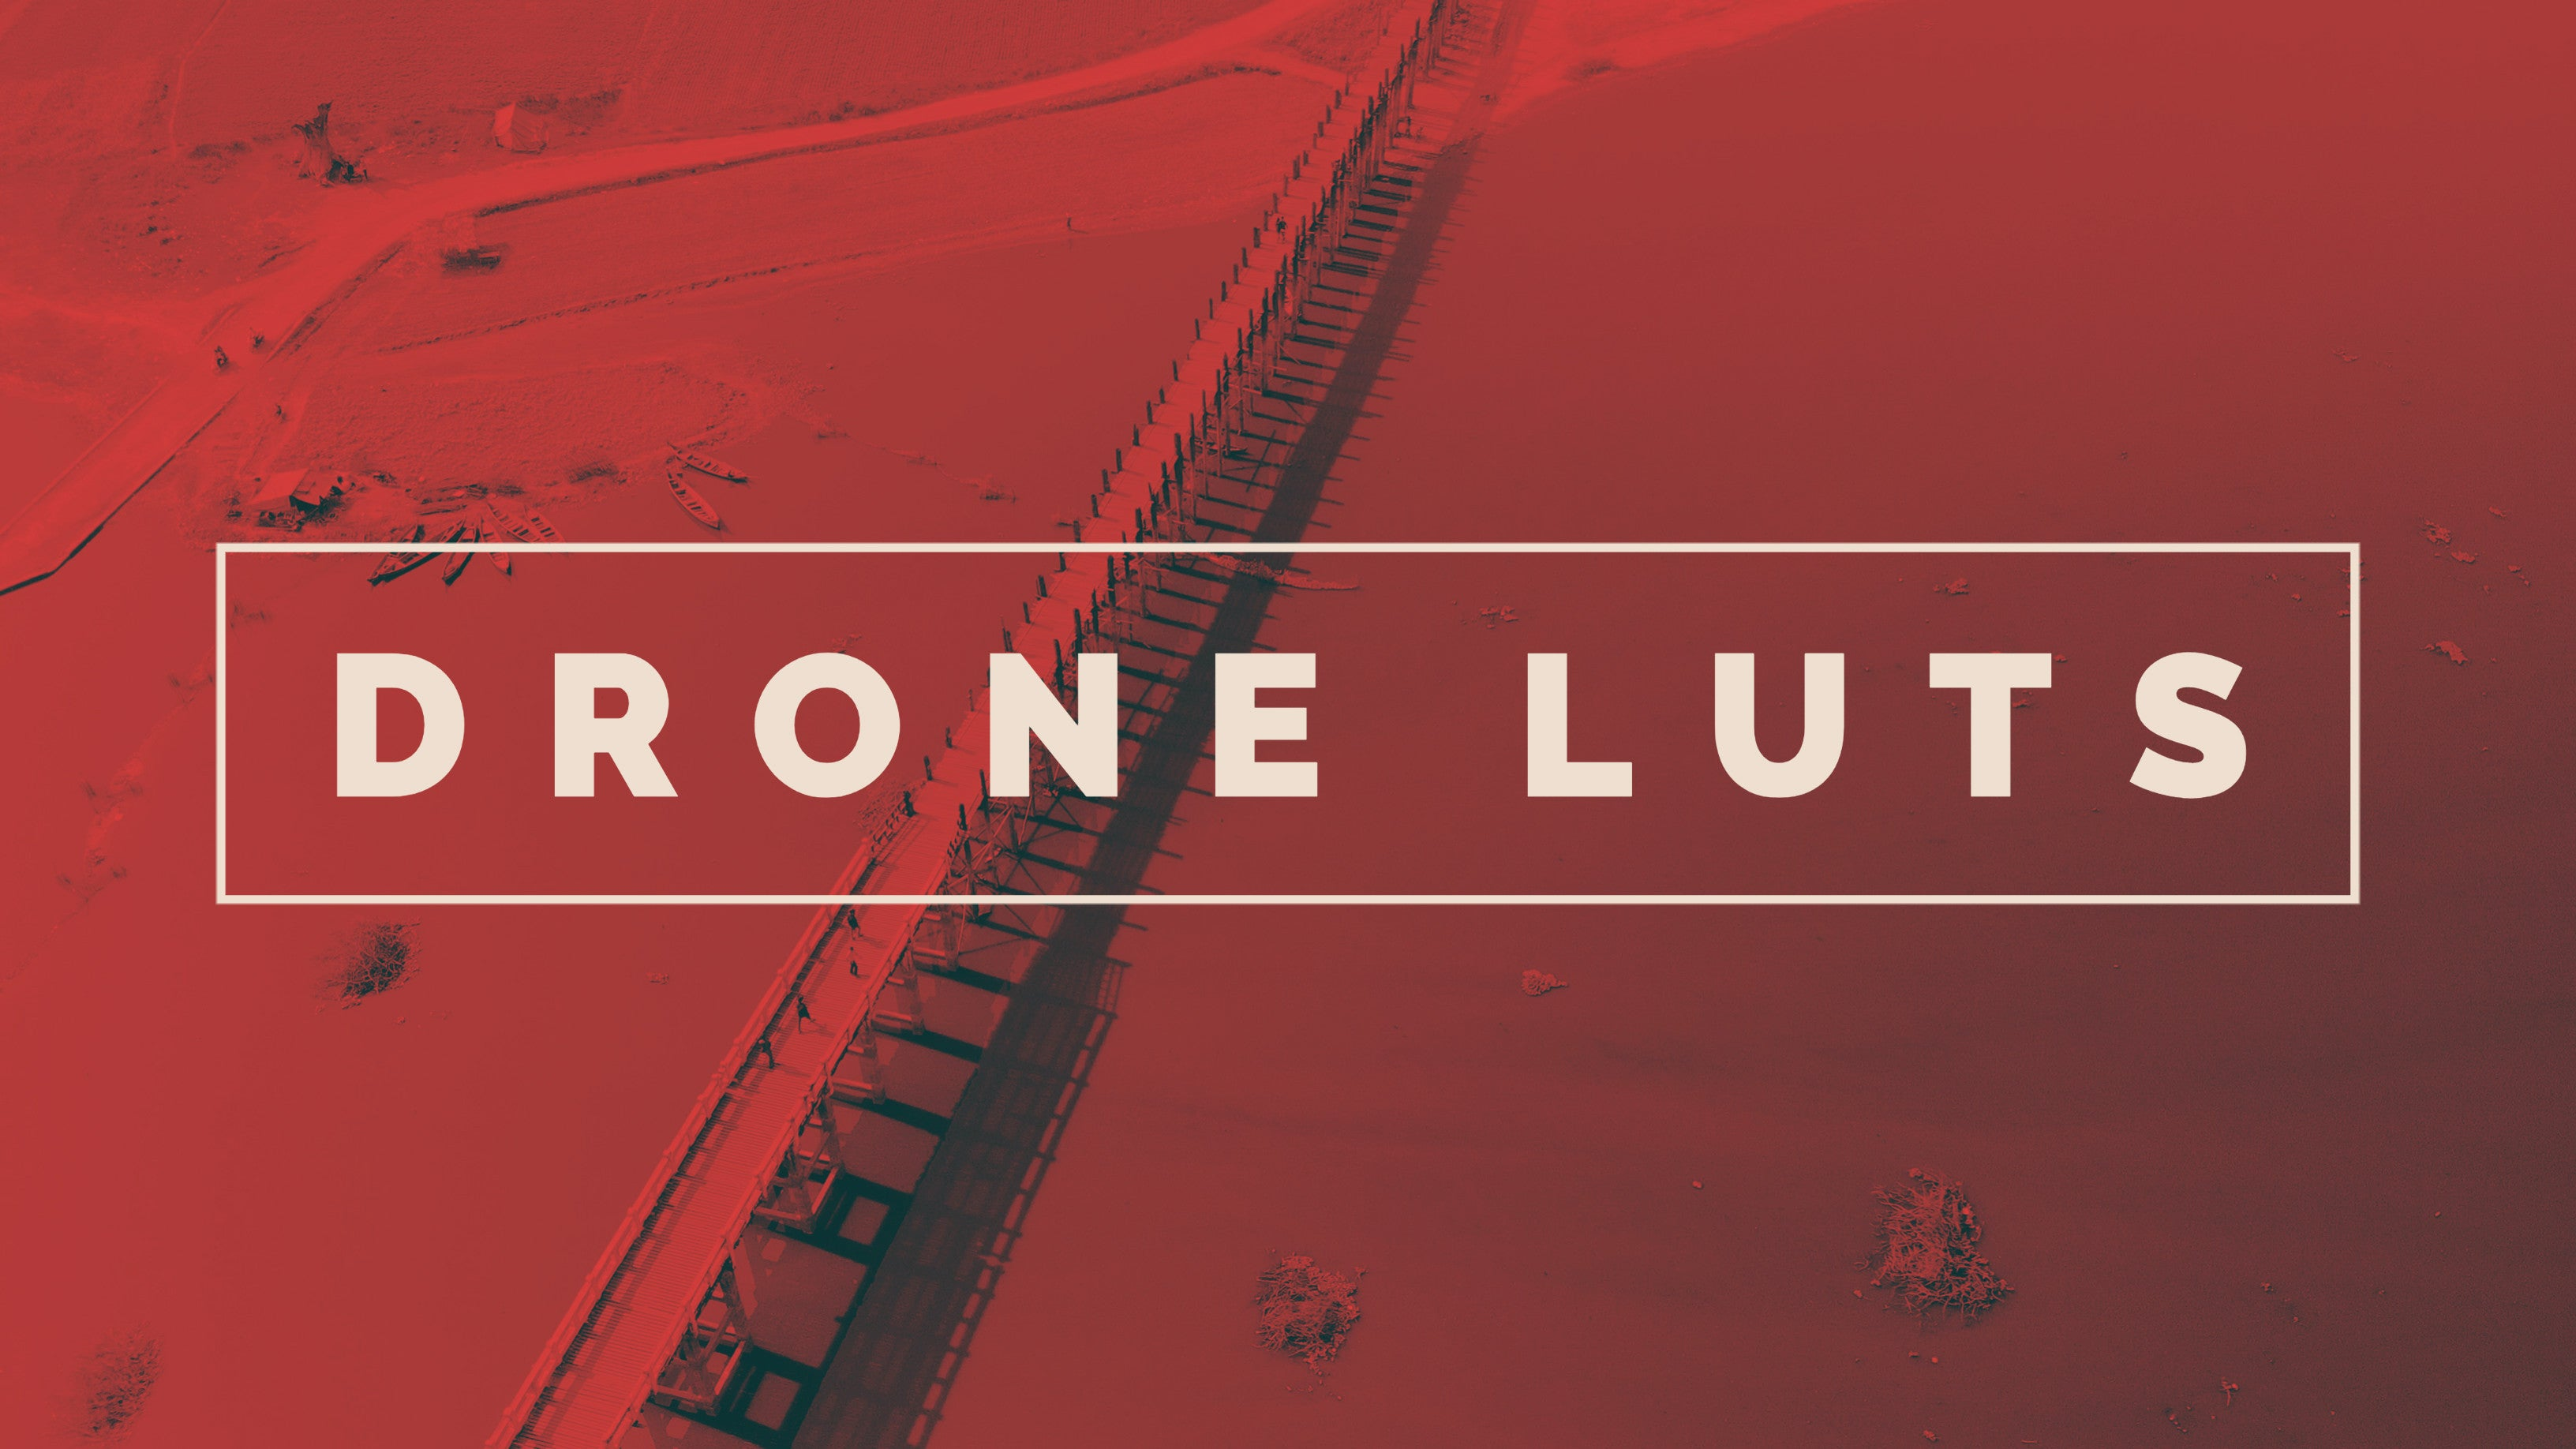 Drone LUTs